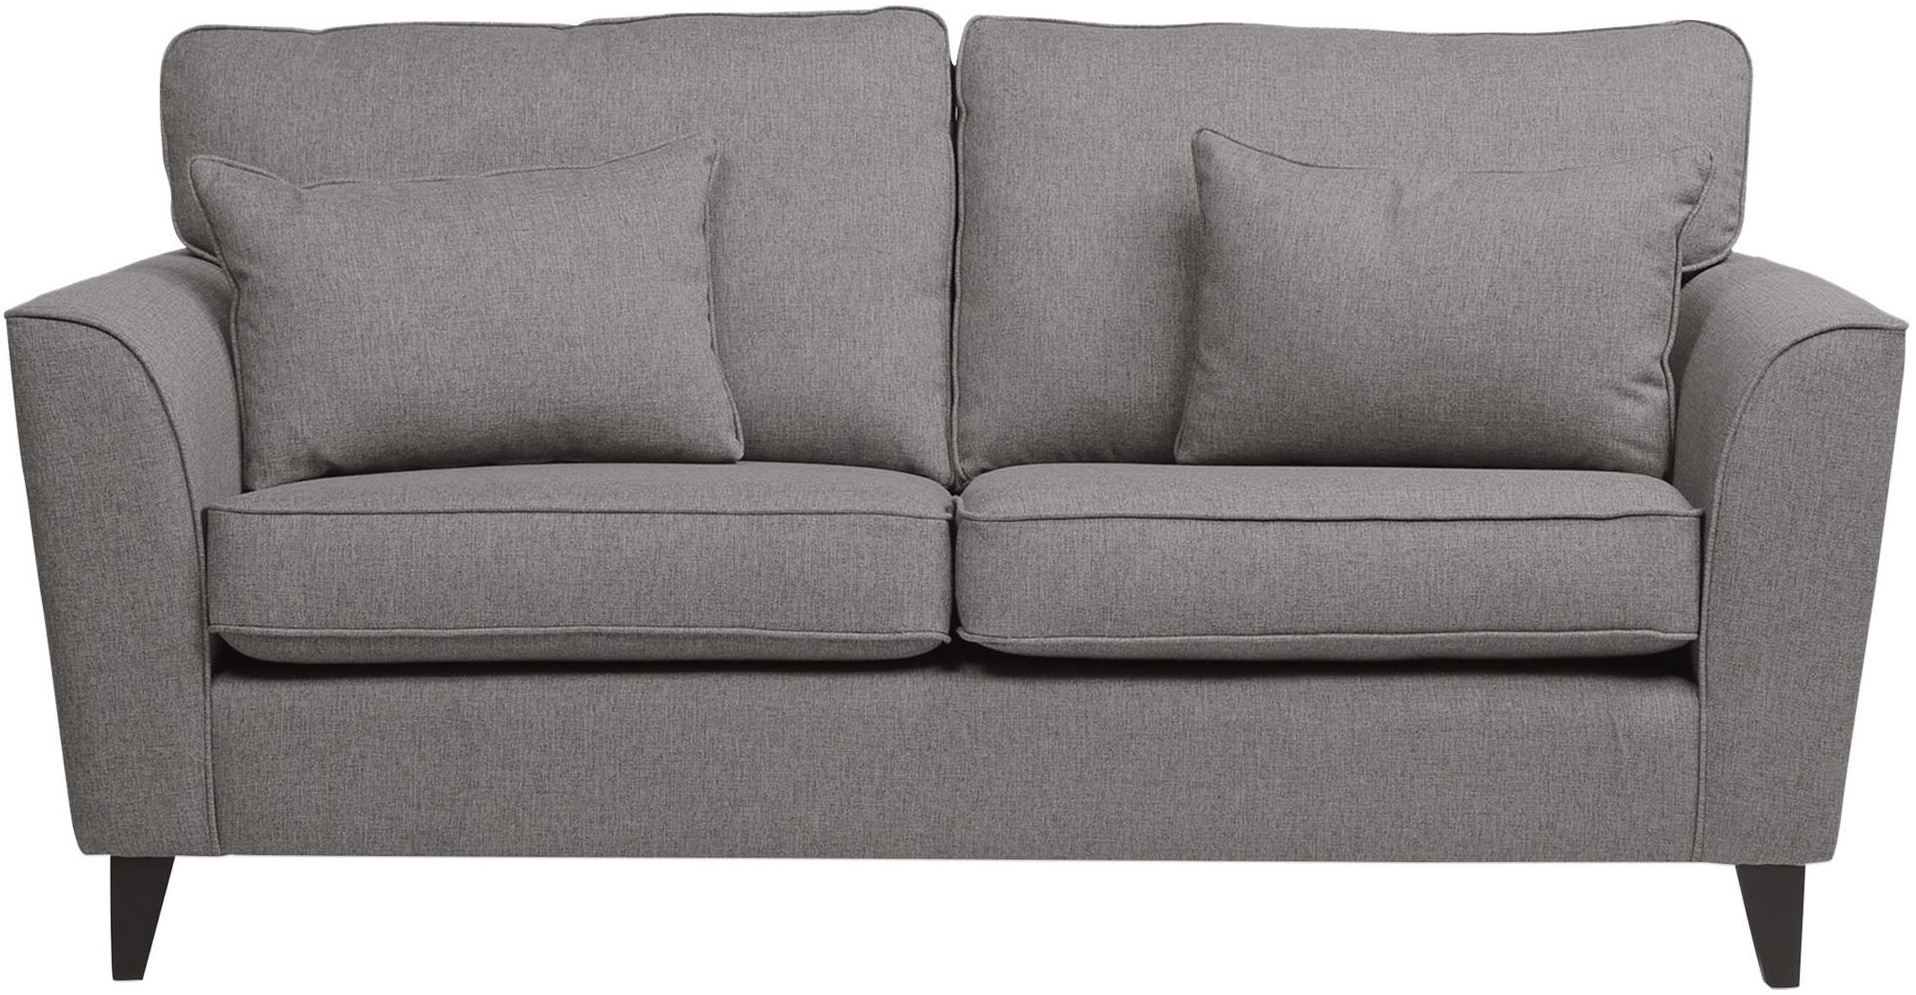 3 sided sectional sofa types of sets with price new byron large seater fabric and matching side